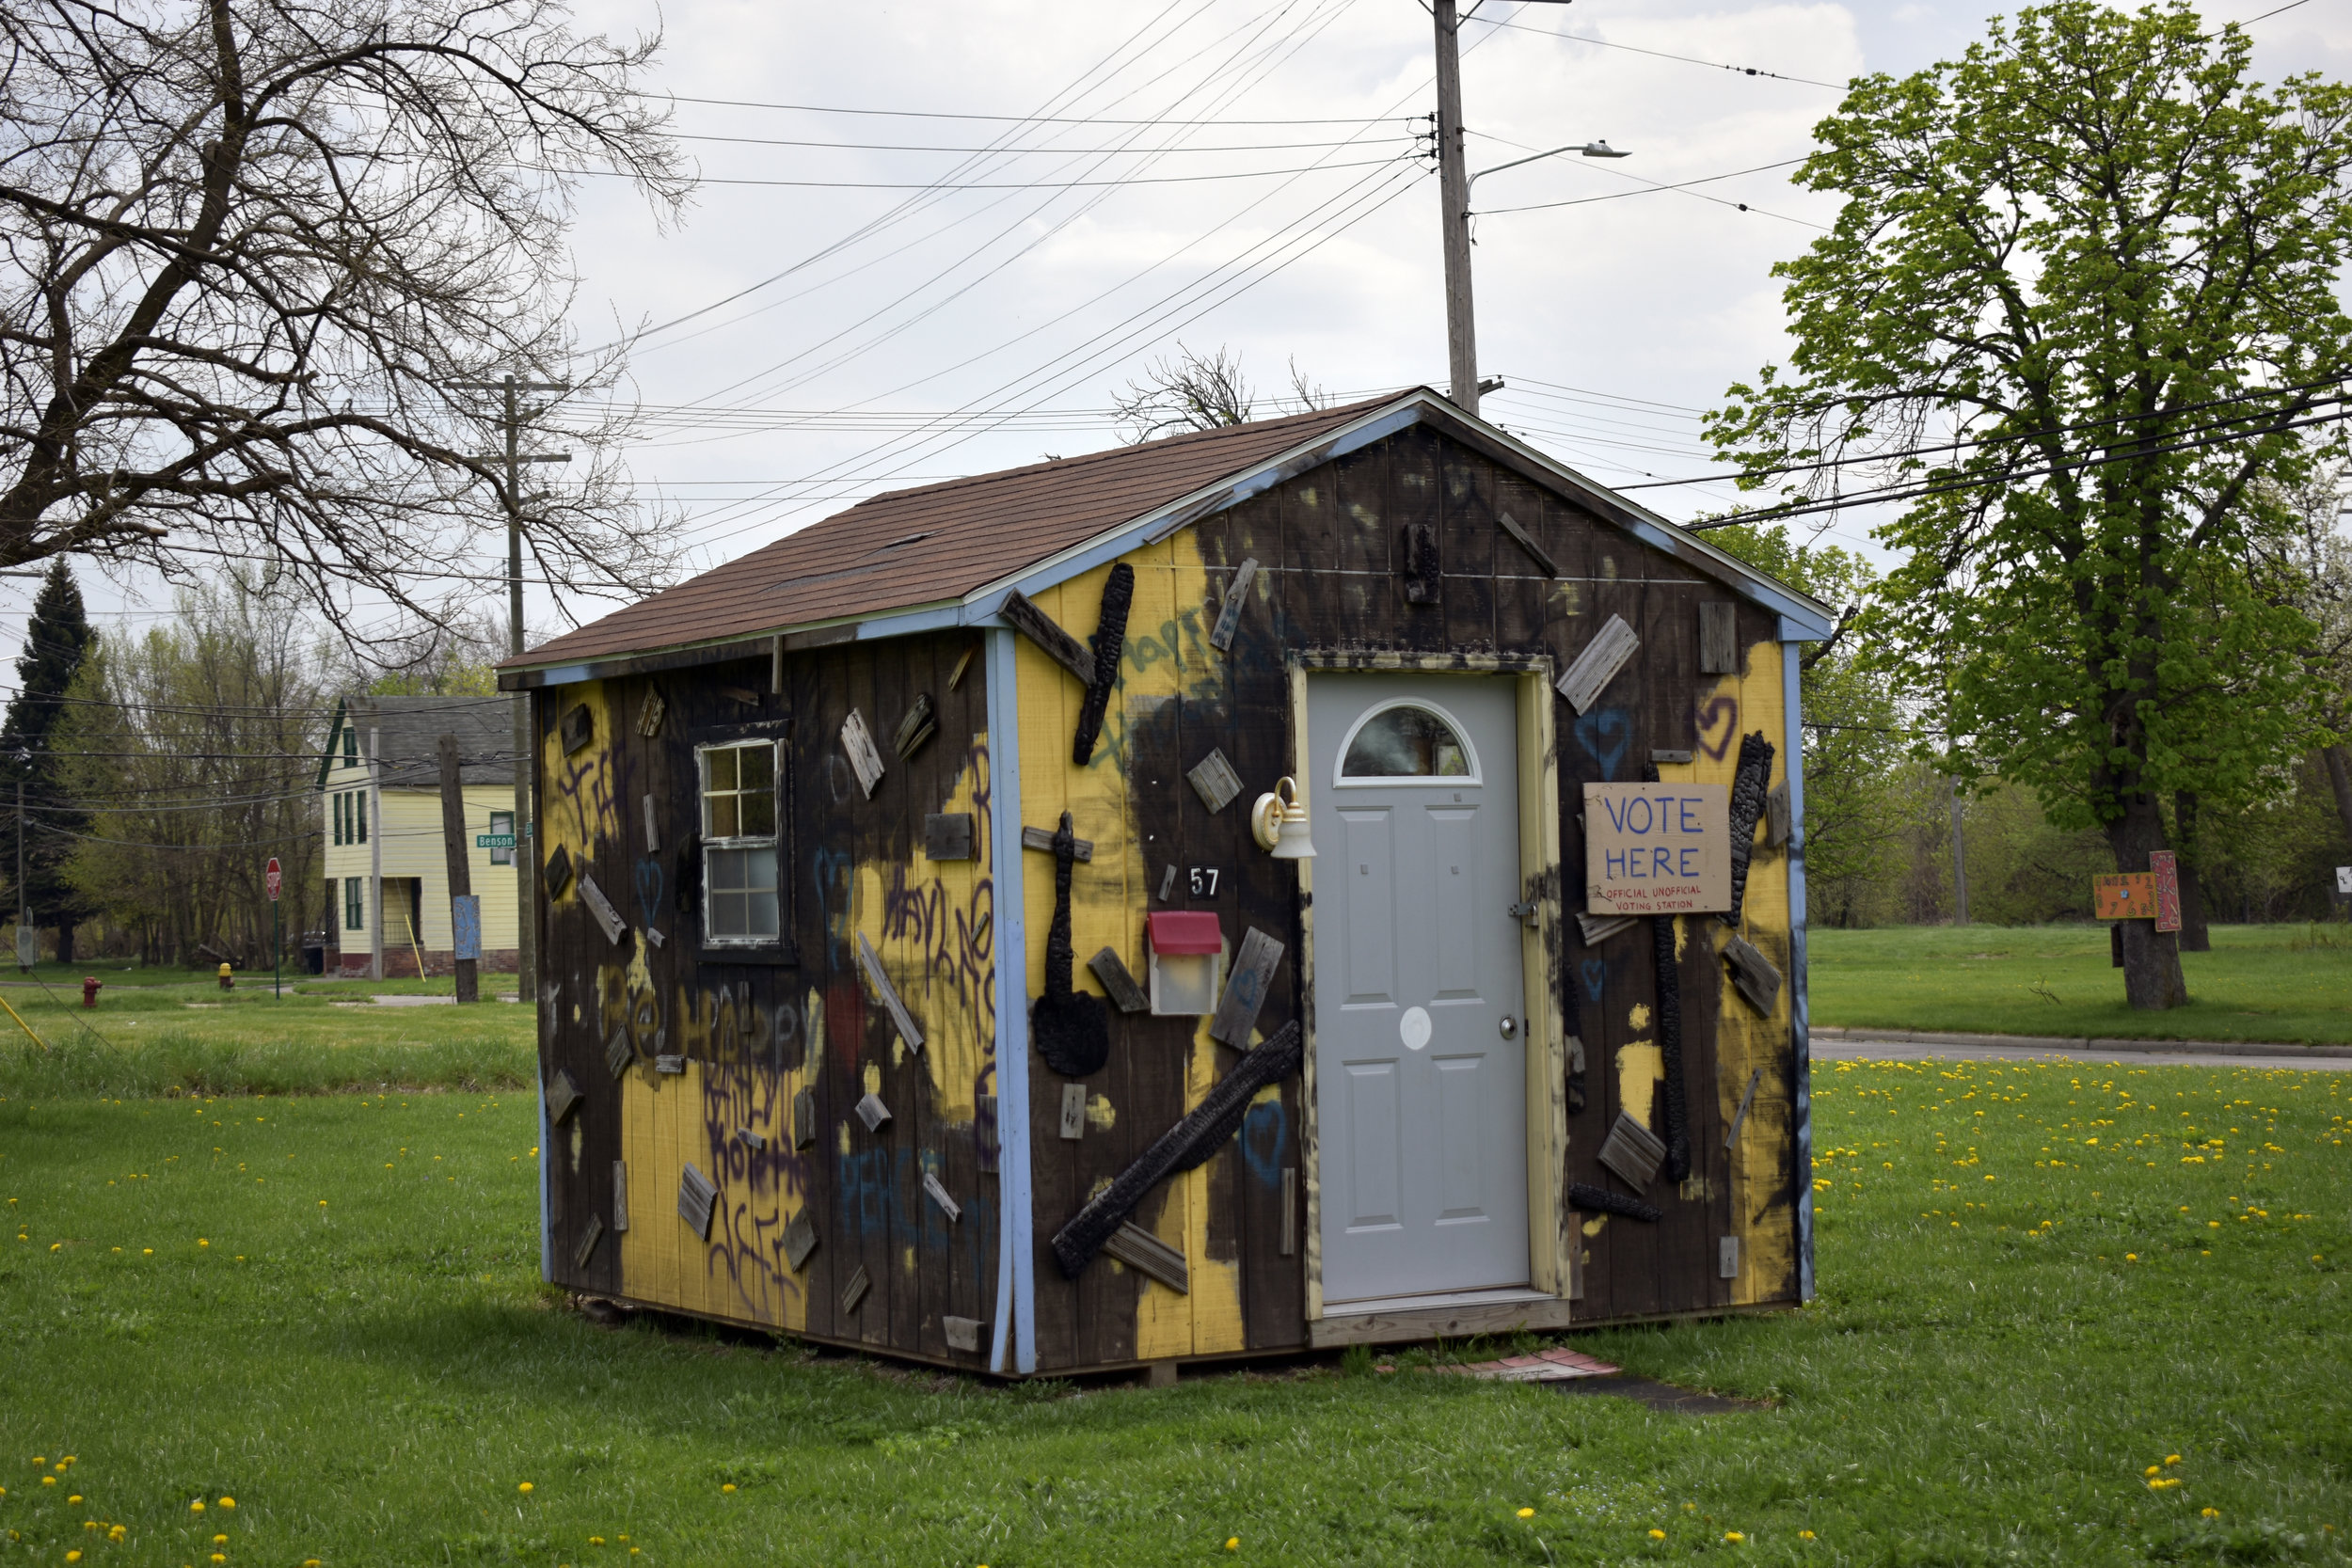 The Heidelberg Project https://www.heidelberg.org